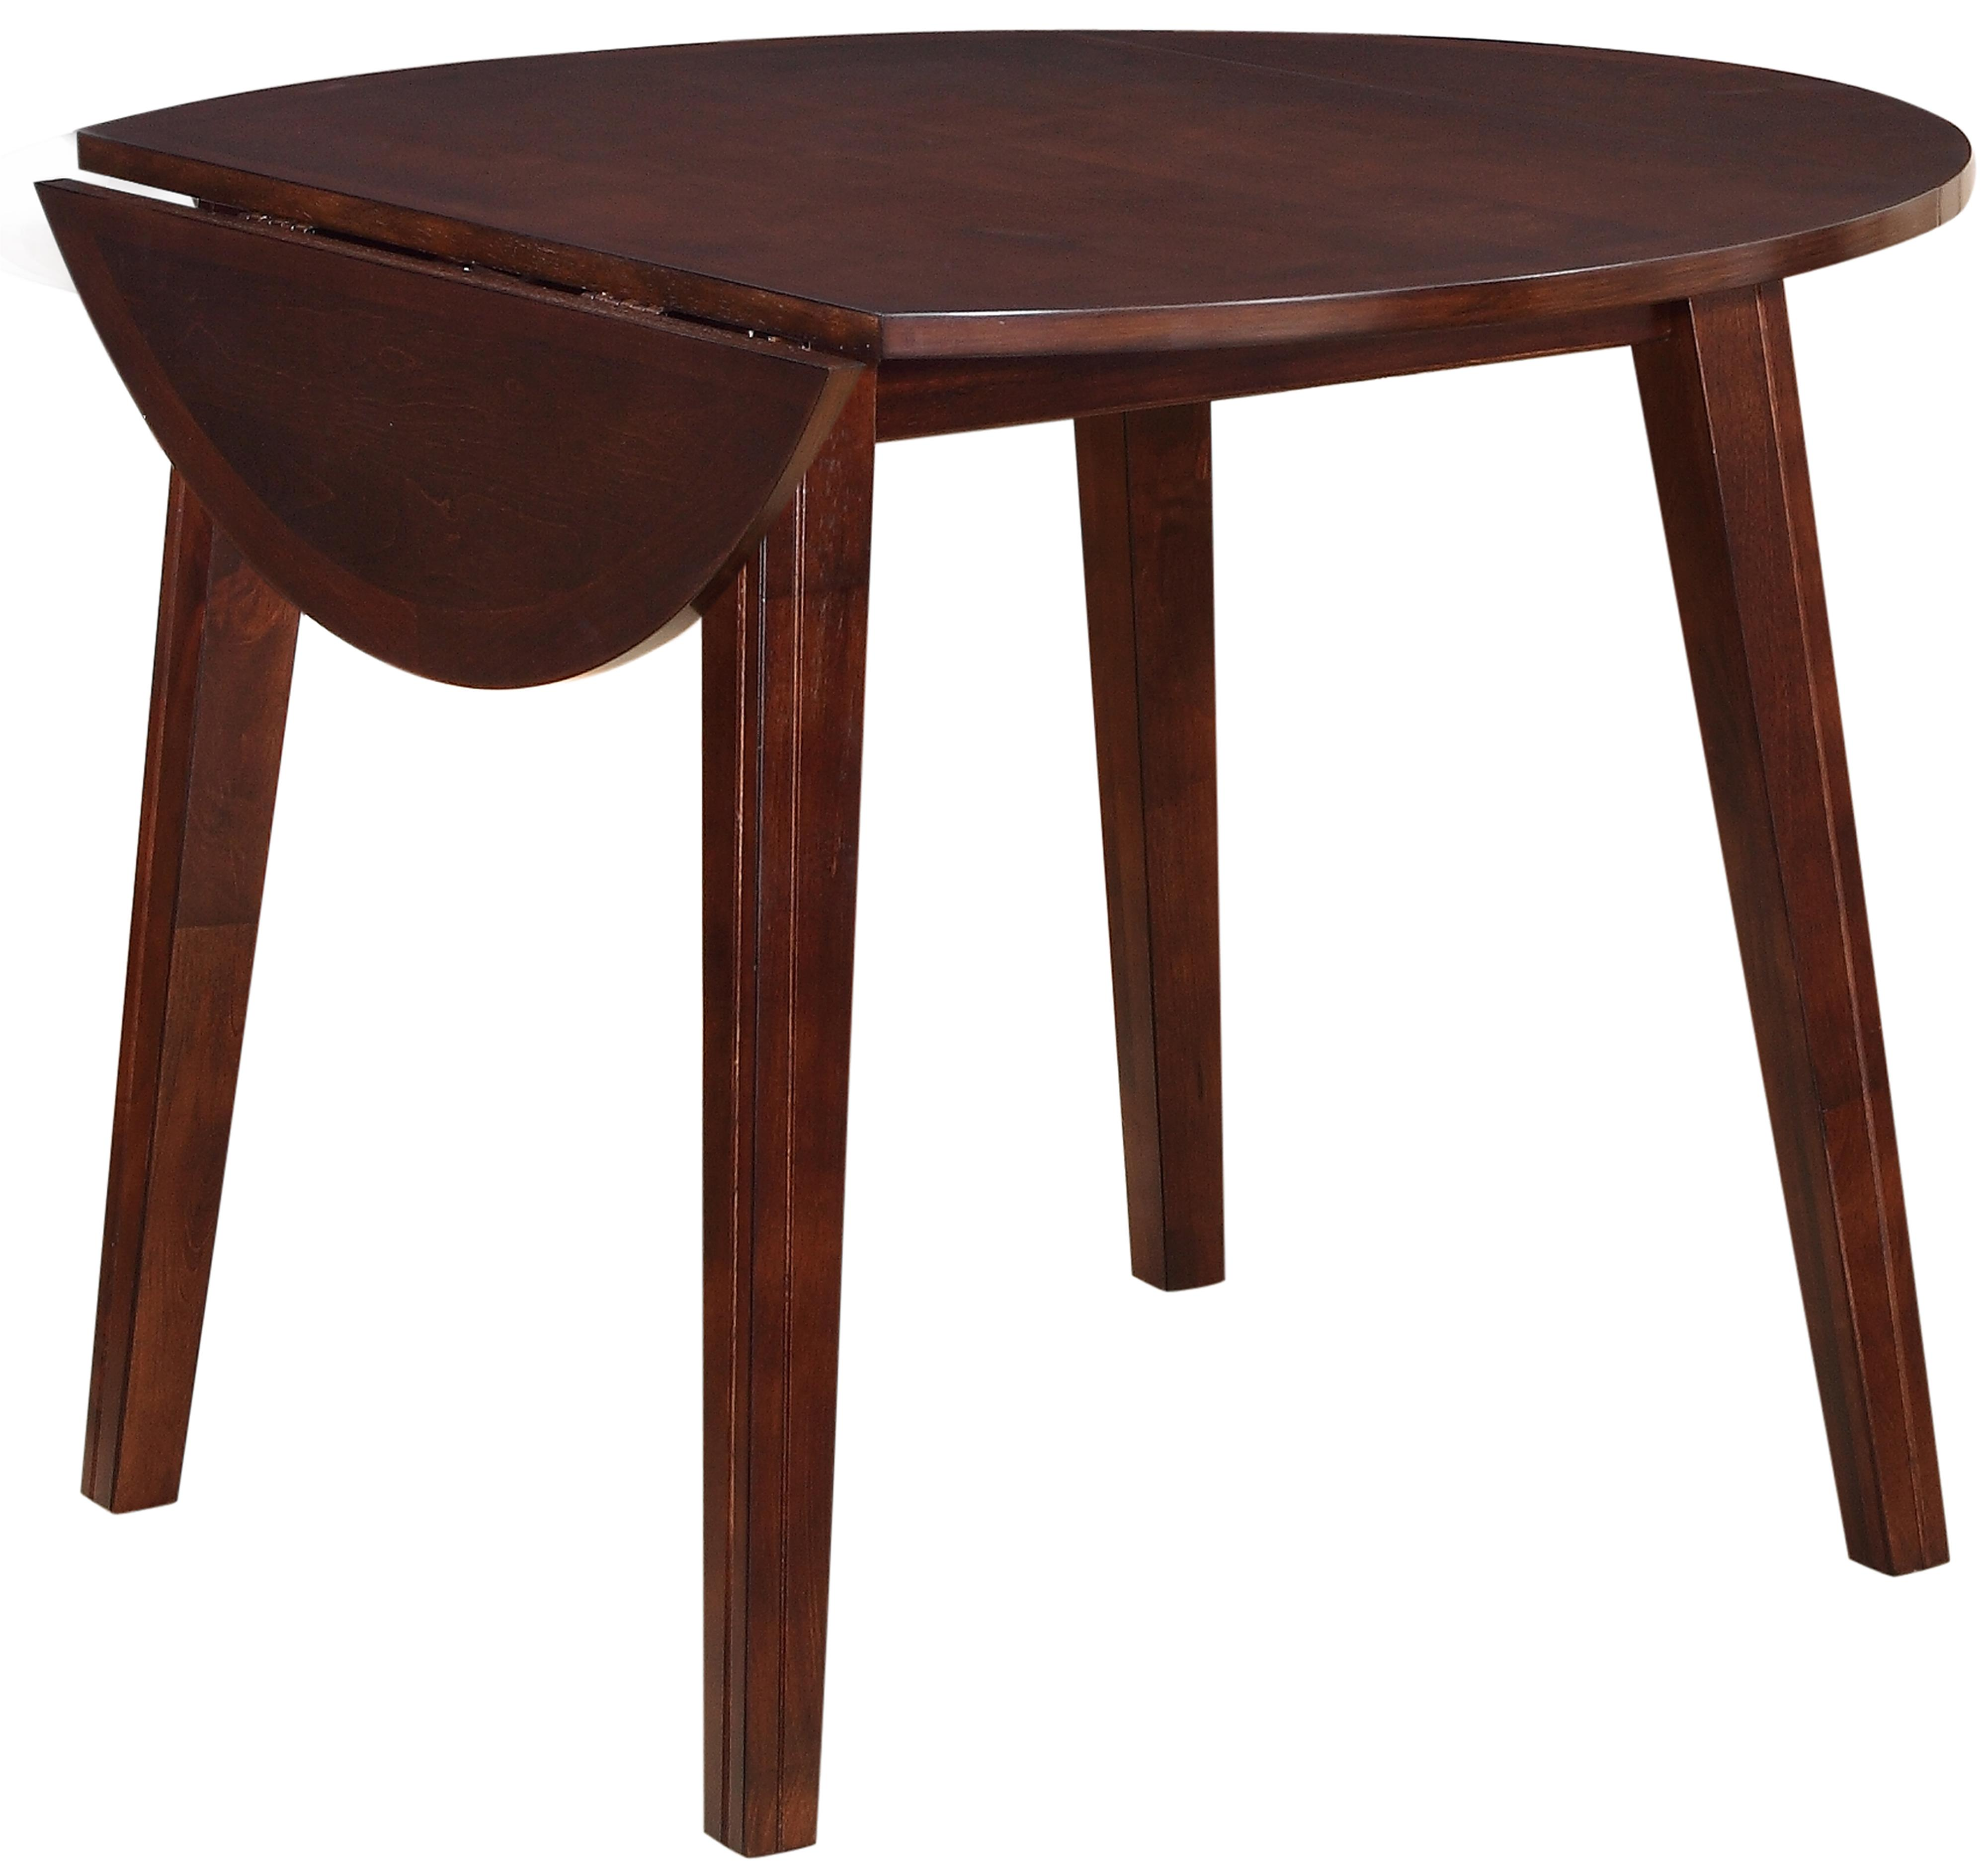 Holland House 8203 Round Drop Leaf Table - Item Number: 8203-4242